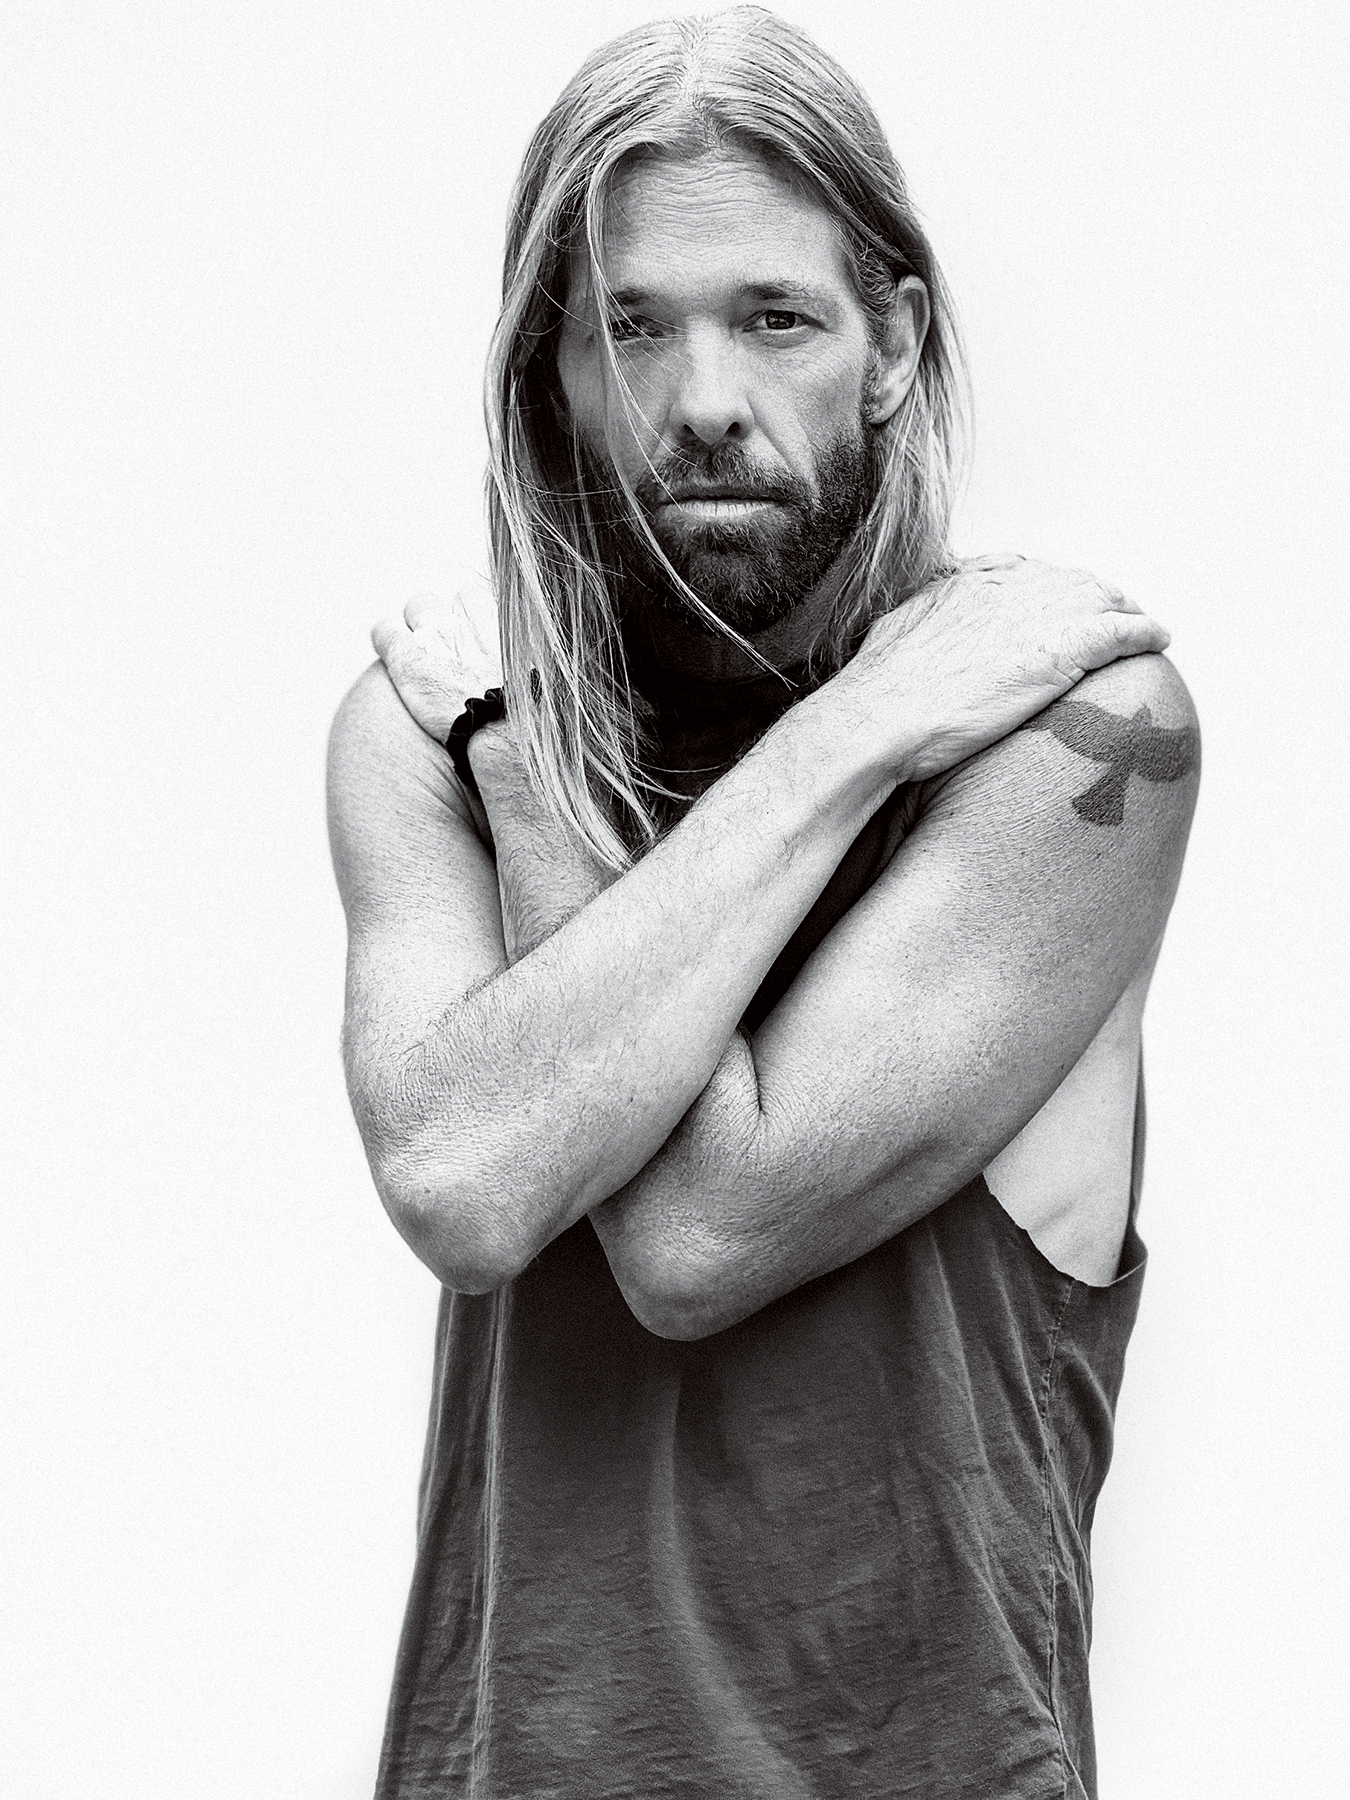 Taylor Hawkins, photographed in Los Angeles on June 10th, 2021.